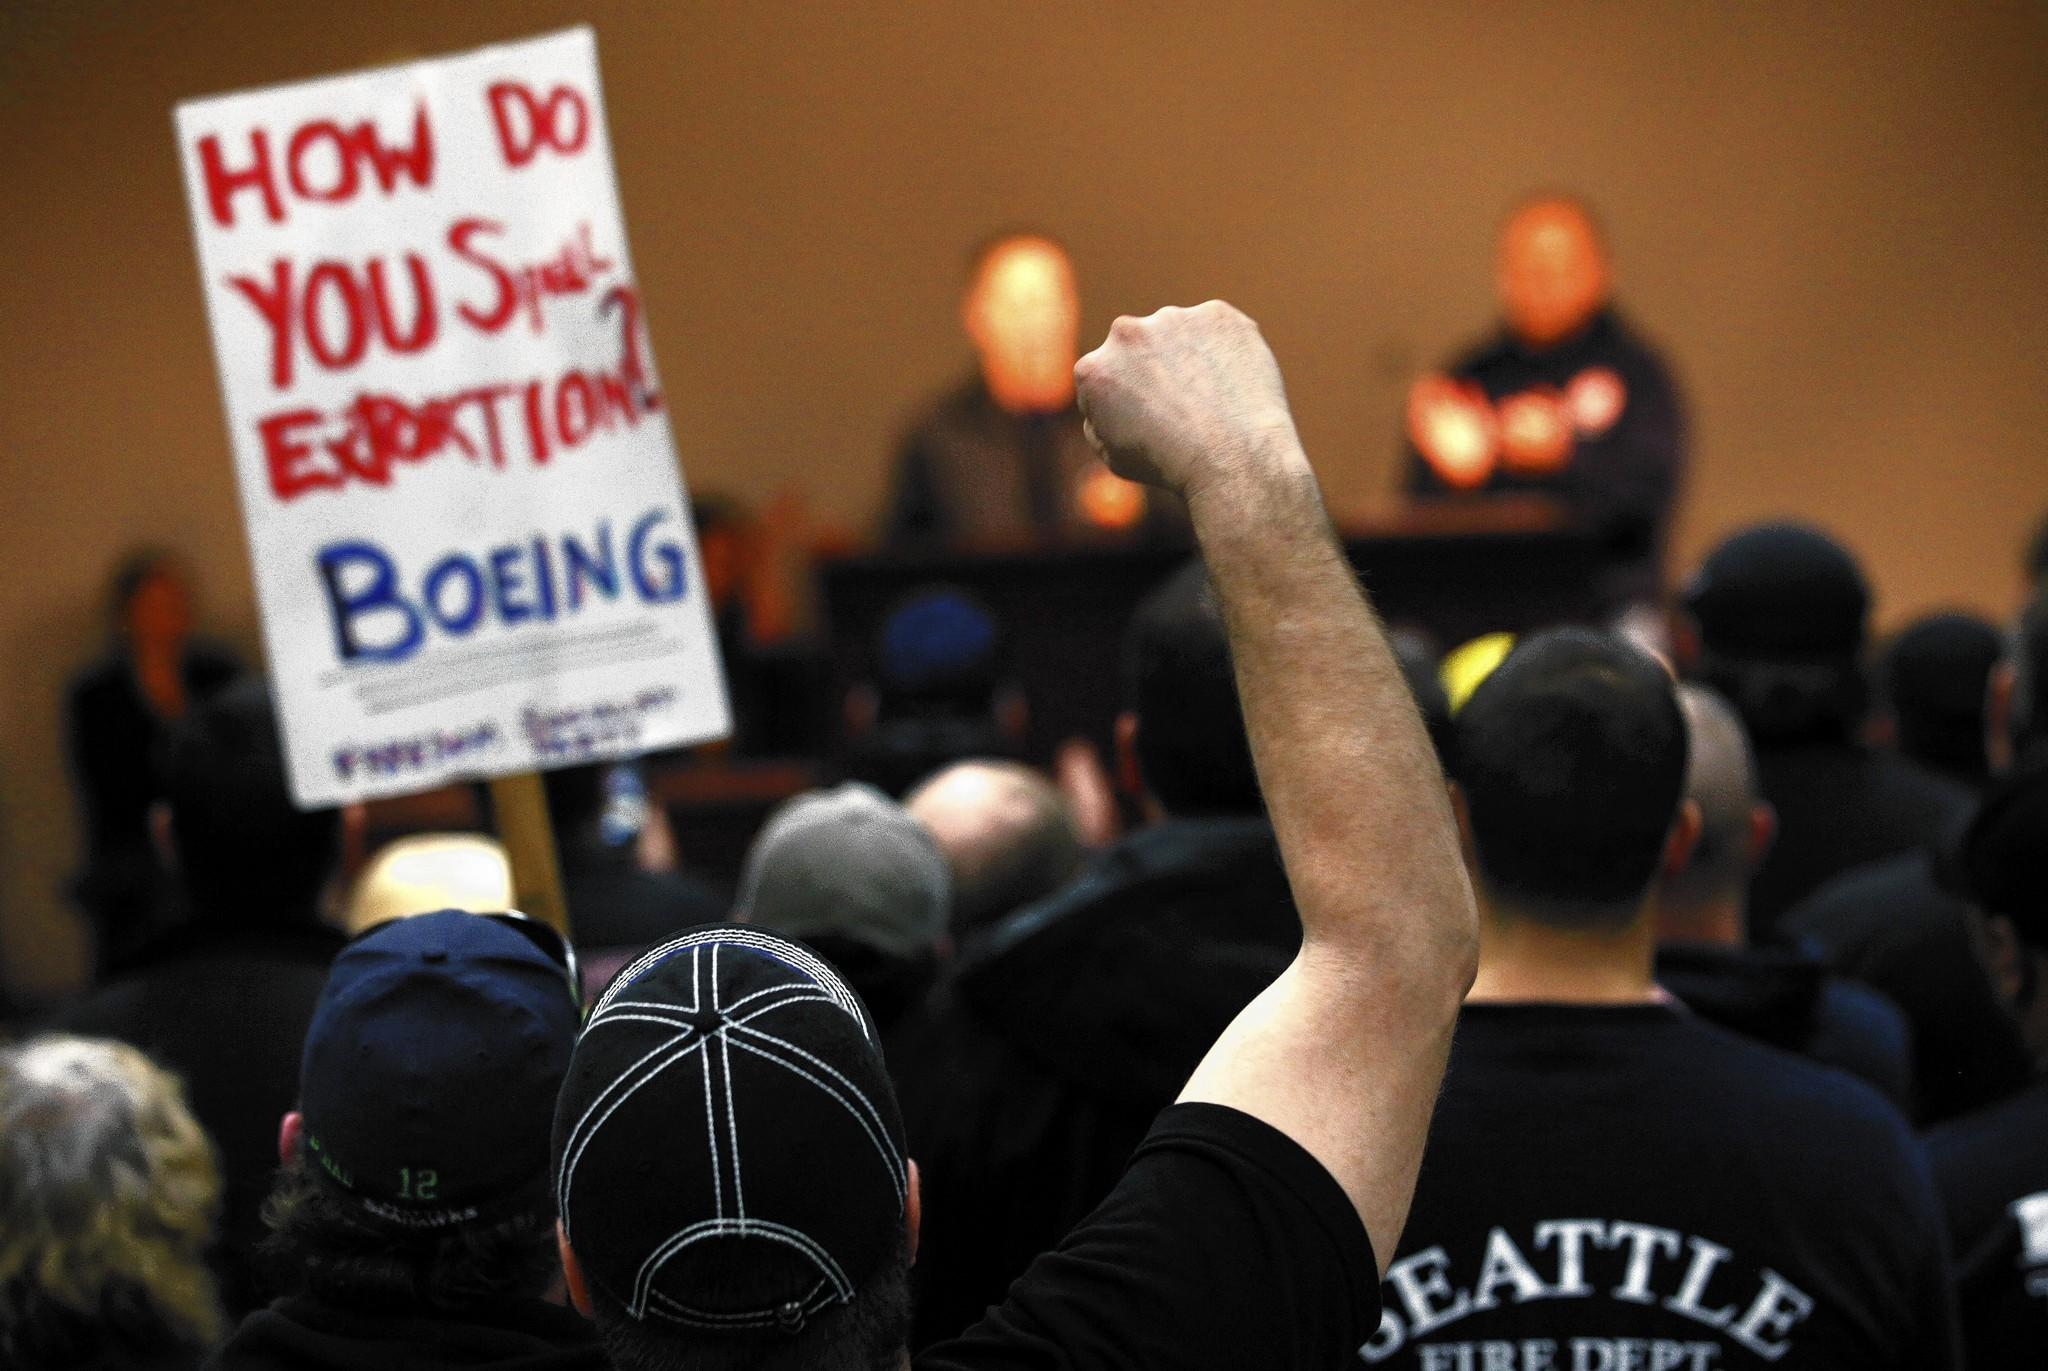 Seattle-area machinist union members rally against a contract with Boeing that included concessions on pensions. In the end, members narrowly approved it after Boeing threatened to take production of the new 777X airliner to another state.